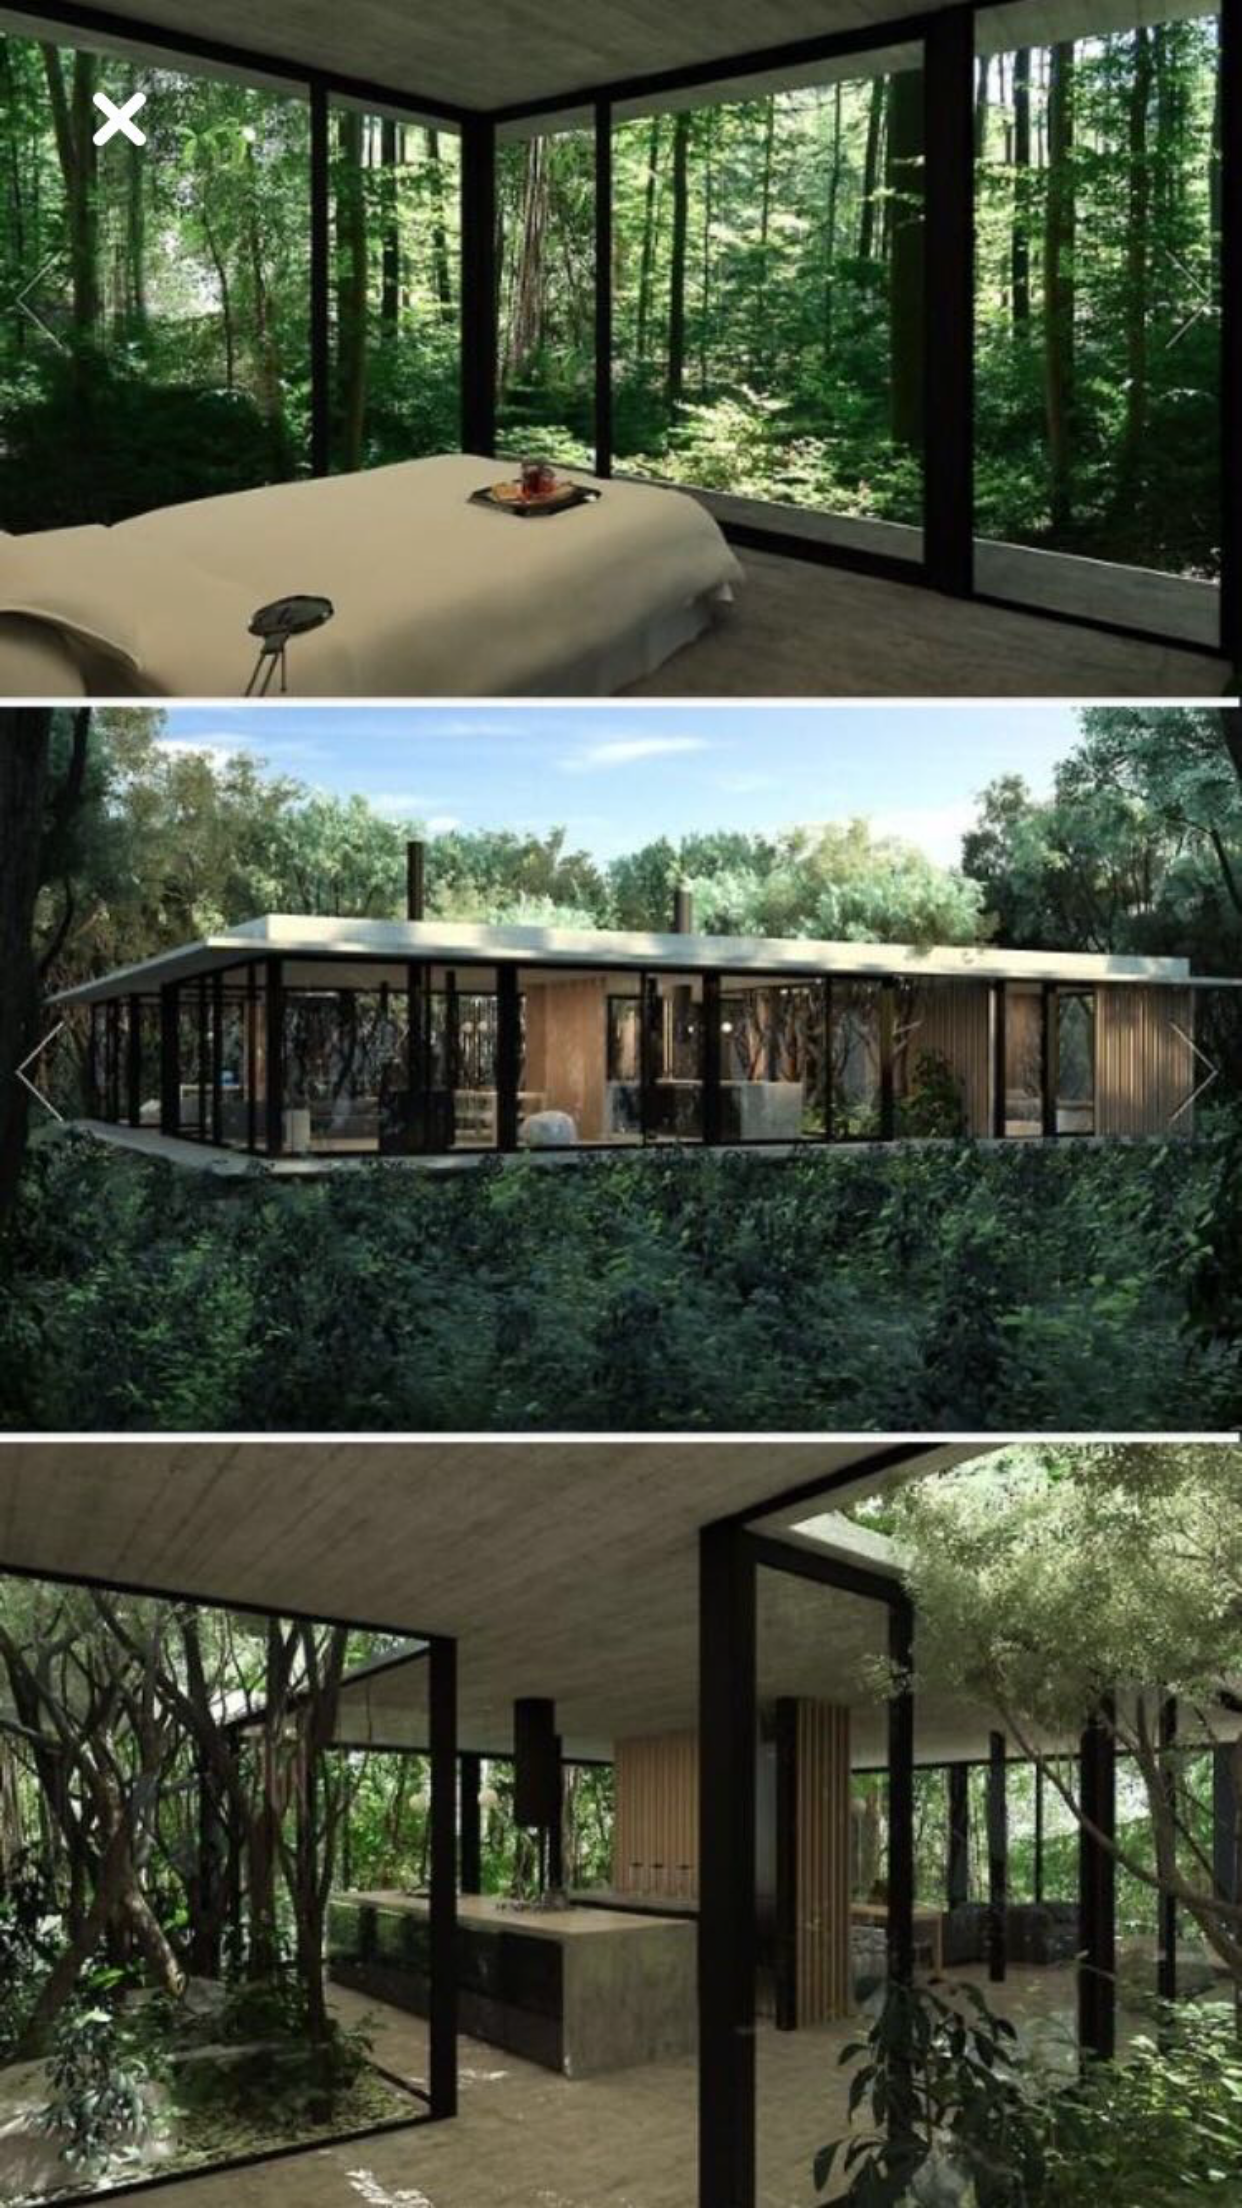 Nicely worked the house around the trees! the planning ... on corner of deck for trees, designs around roses, designs flowers, largest house built in trees, shading a building with trees, designs around windows, chained of fallen trees, designs around mailbox, designs in trees,